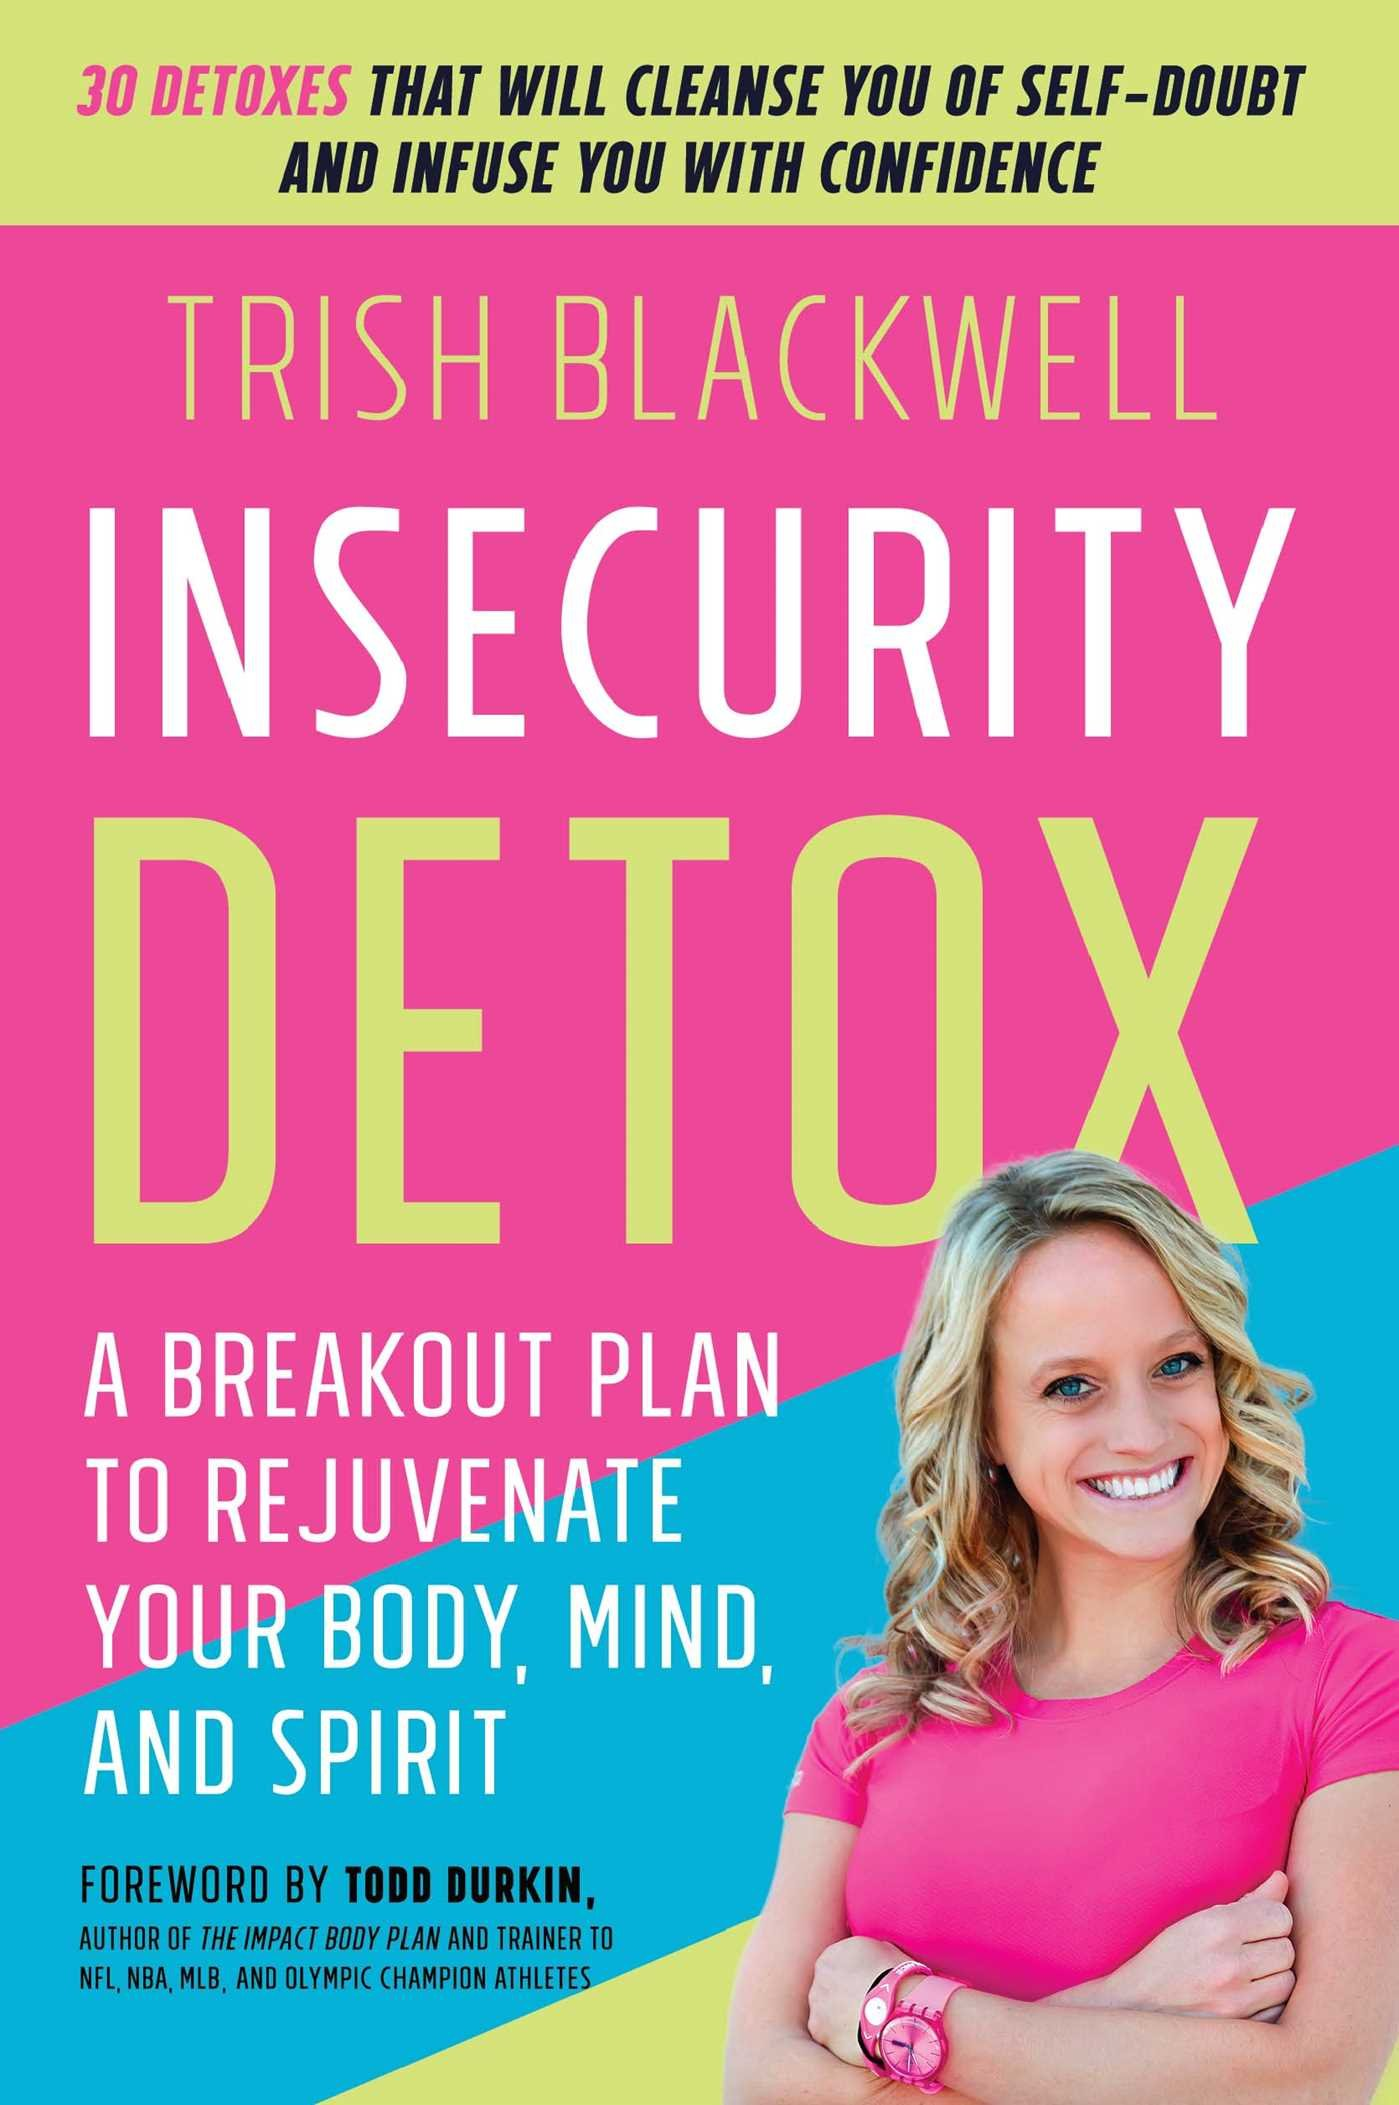 Insecurity Detox: A Breakout Plan to Rejuvenate Your Body, Mind, and